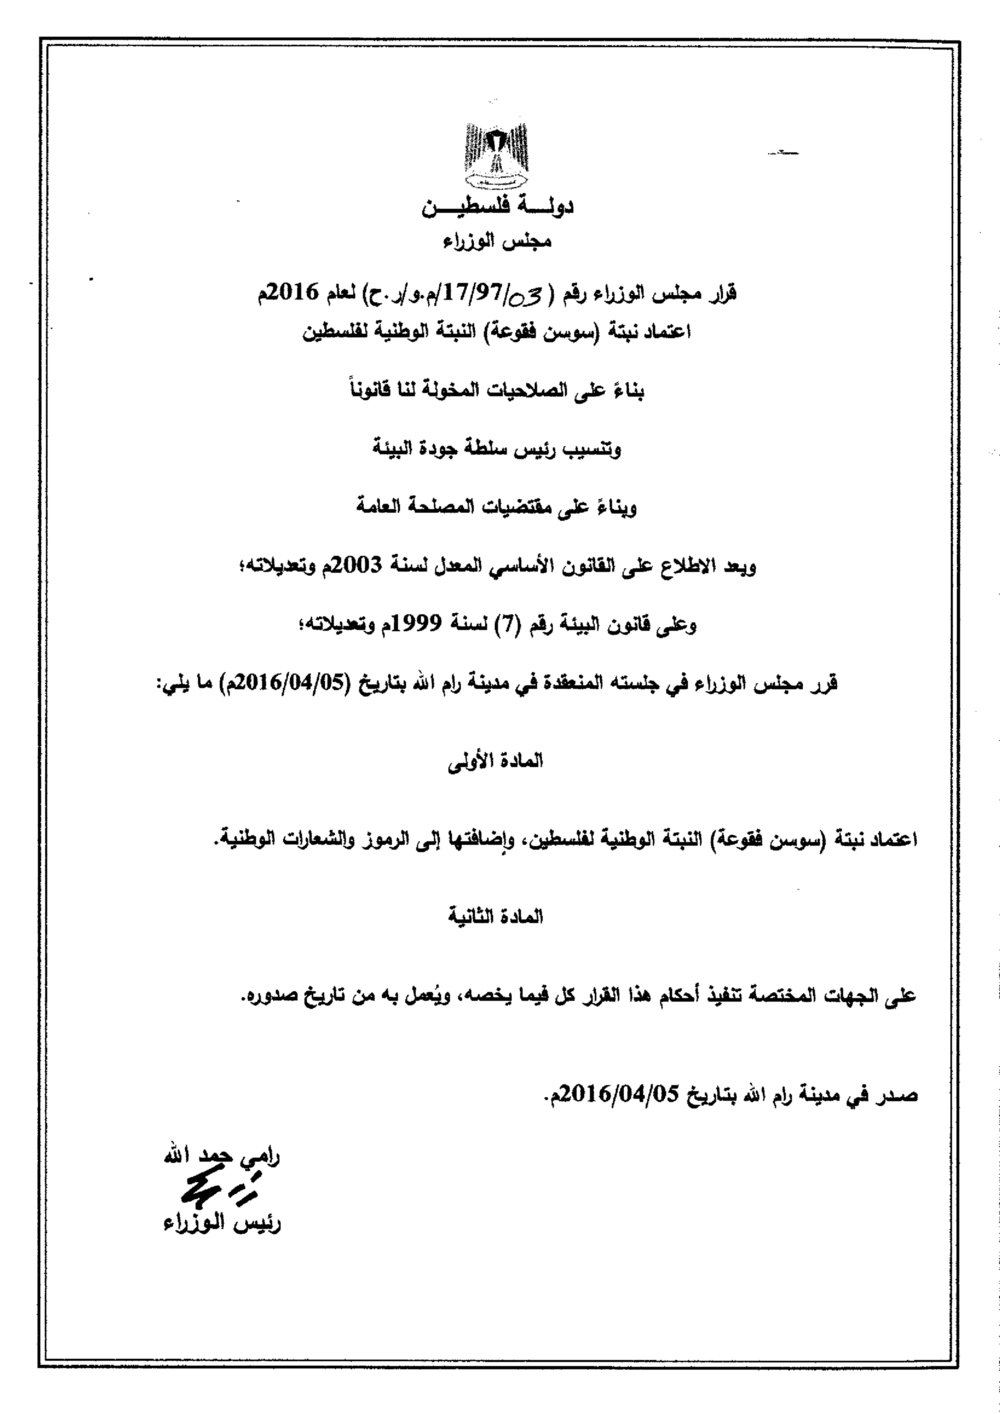 State of Palestine, PALESTINE CABINET'S ANNOUNCEMENT on the intention to consider the iris plant the national plant of Palestine.